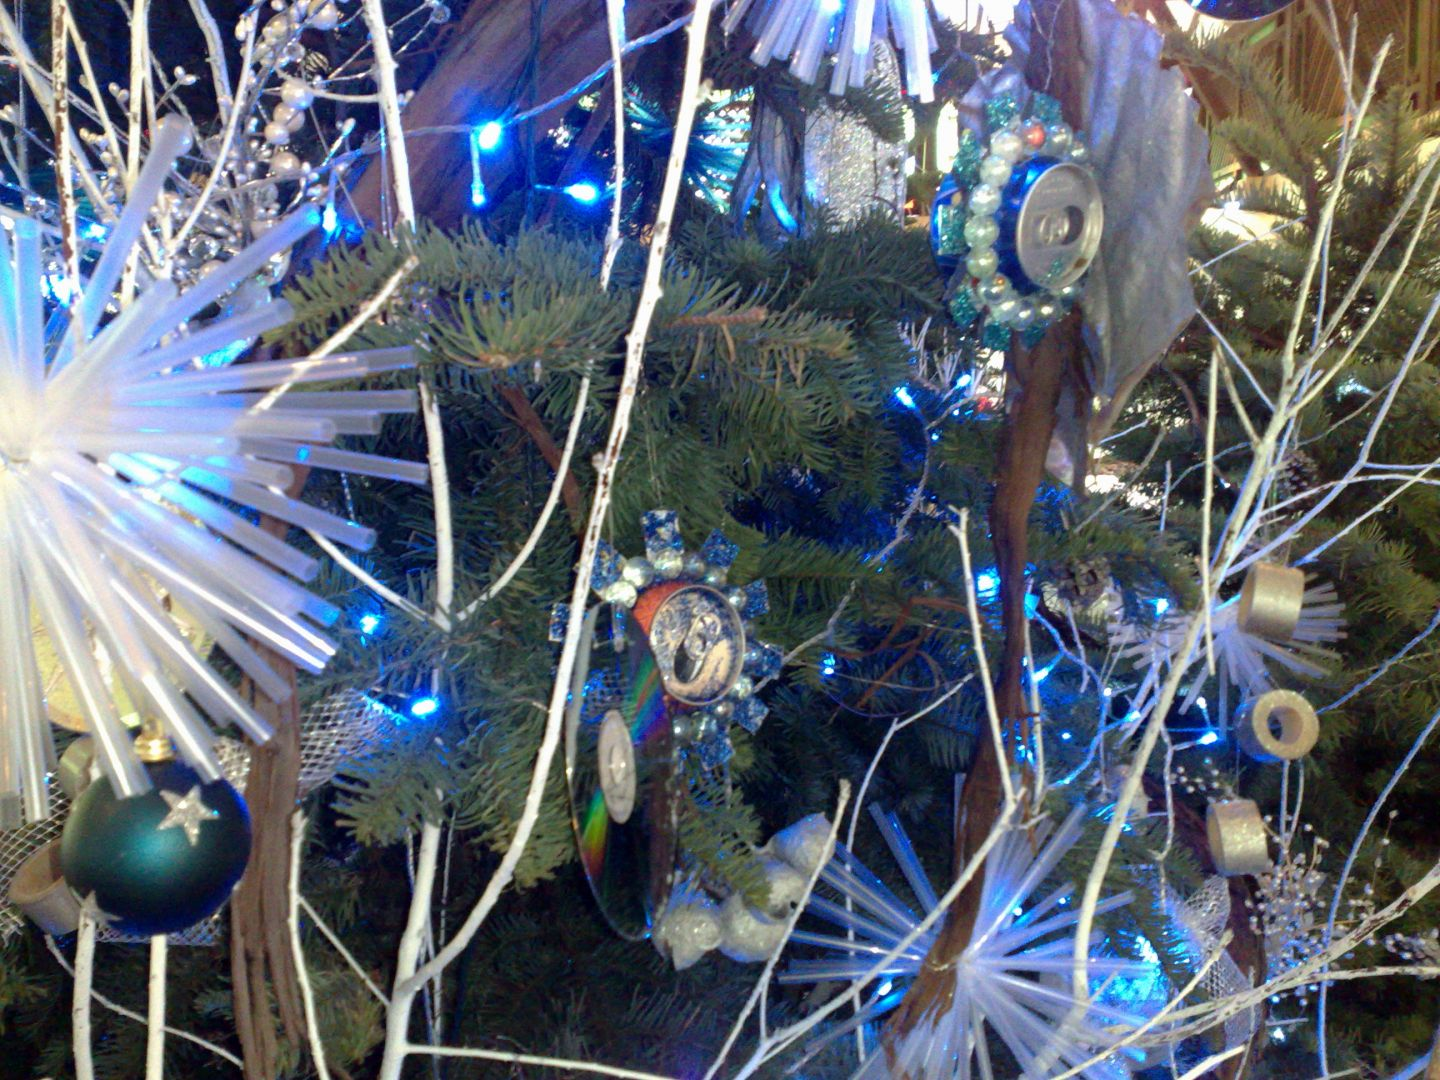 Christmas Decorations Recycled Materials : Christmas tree dressed in recycled materials zit seng s